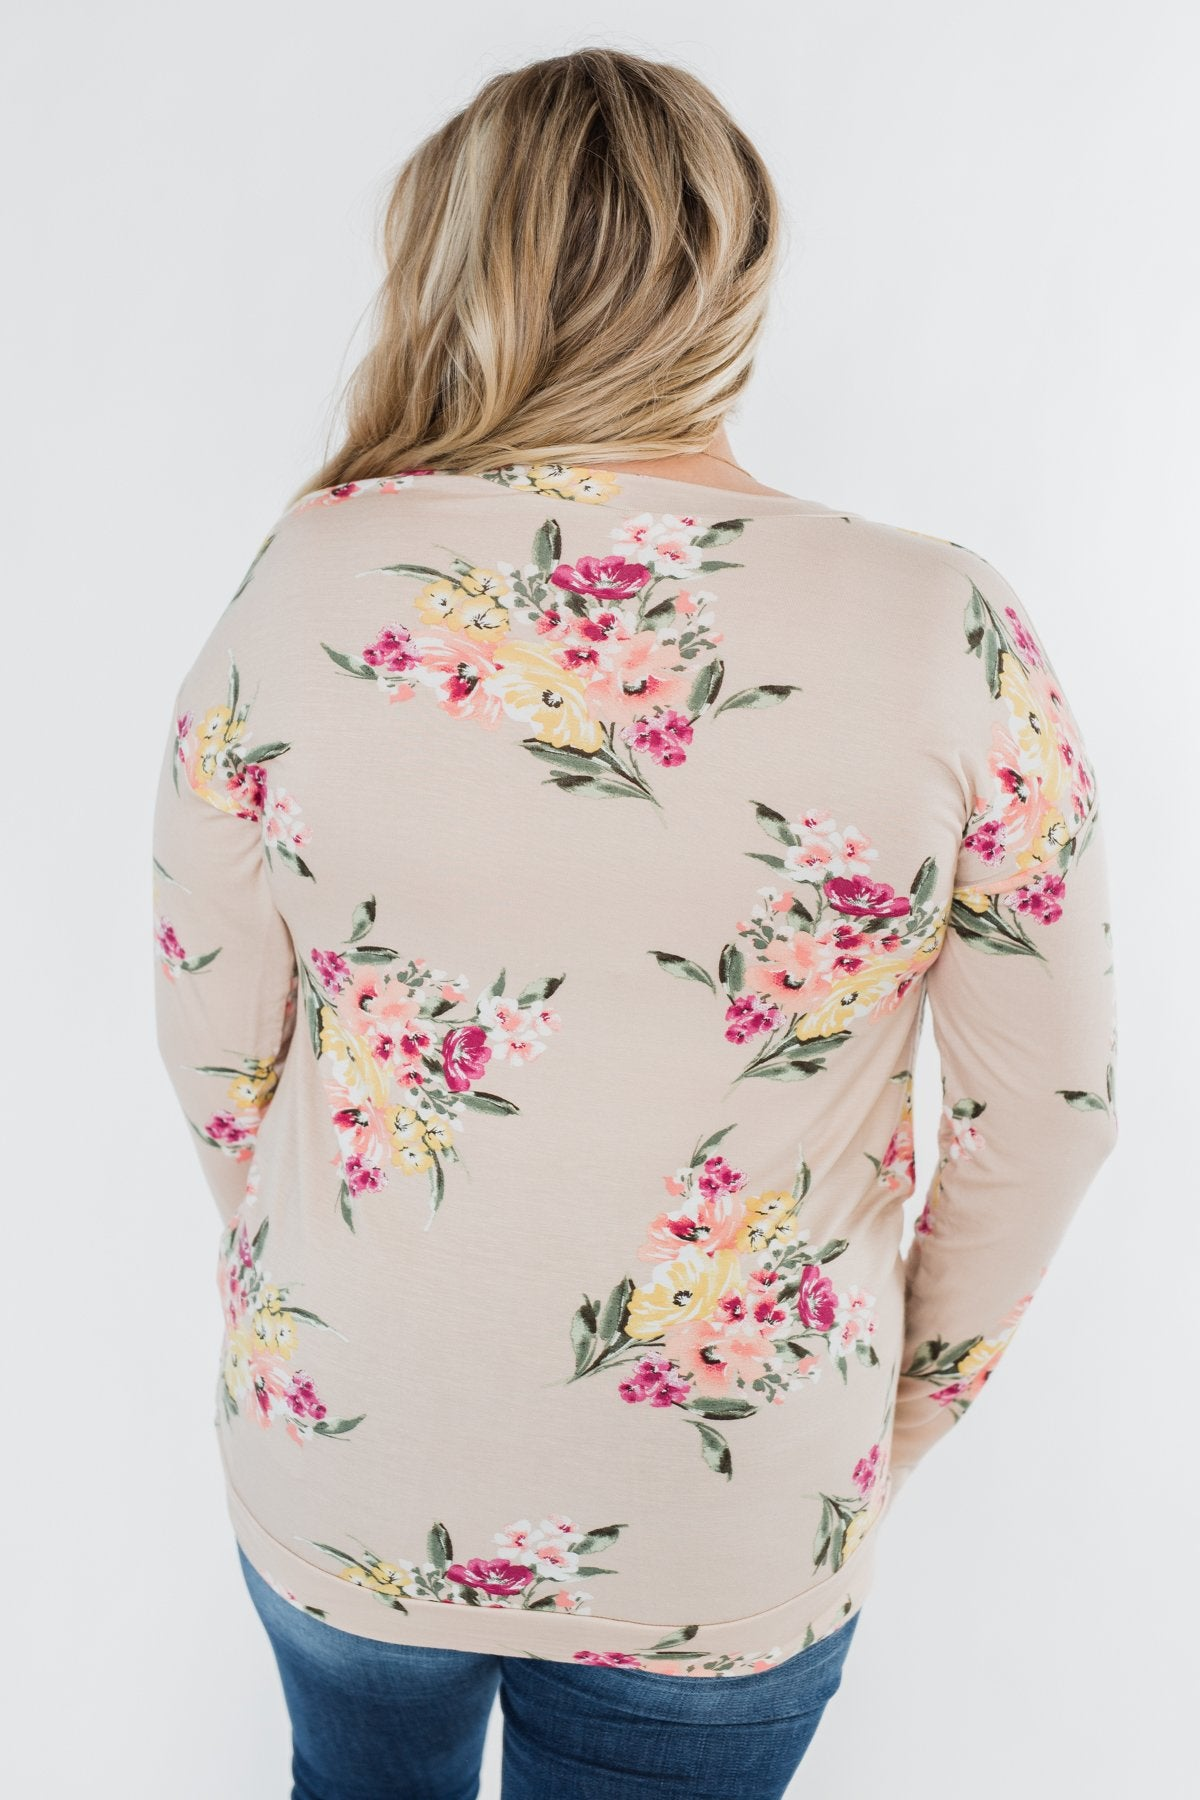 All The Love Floral Twist Top- Light Peach